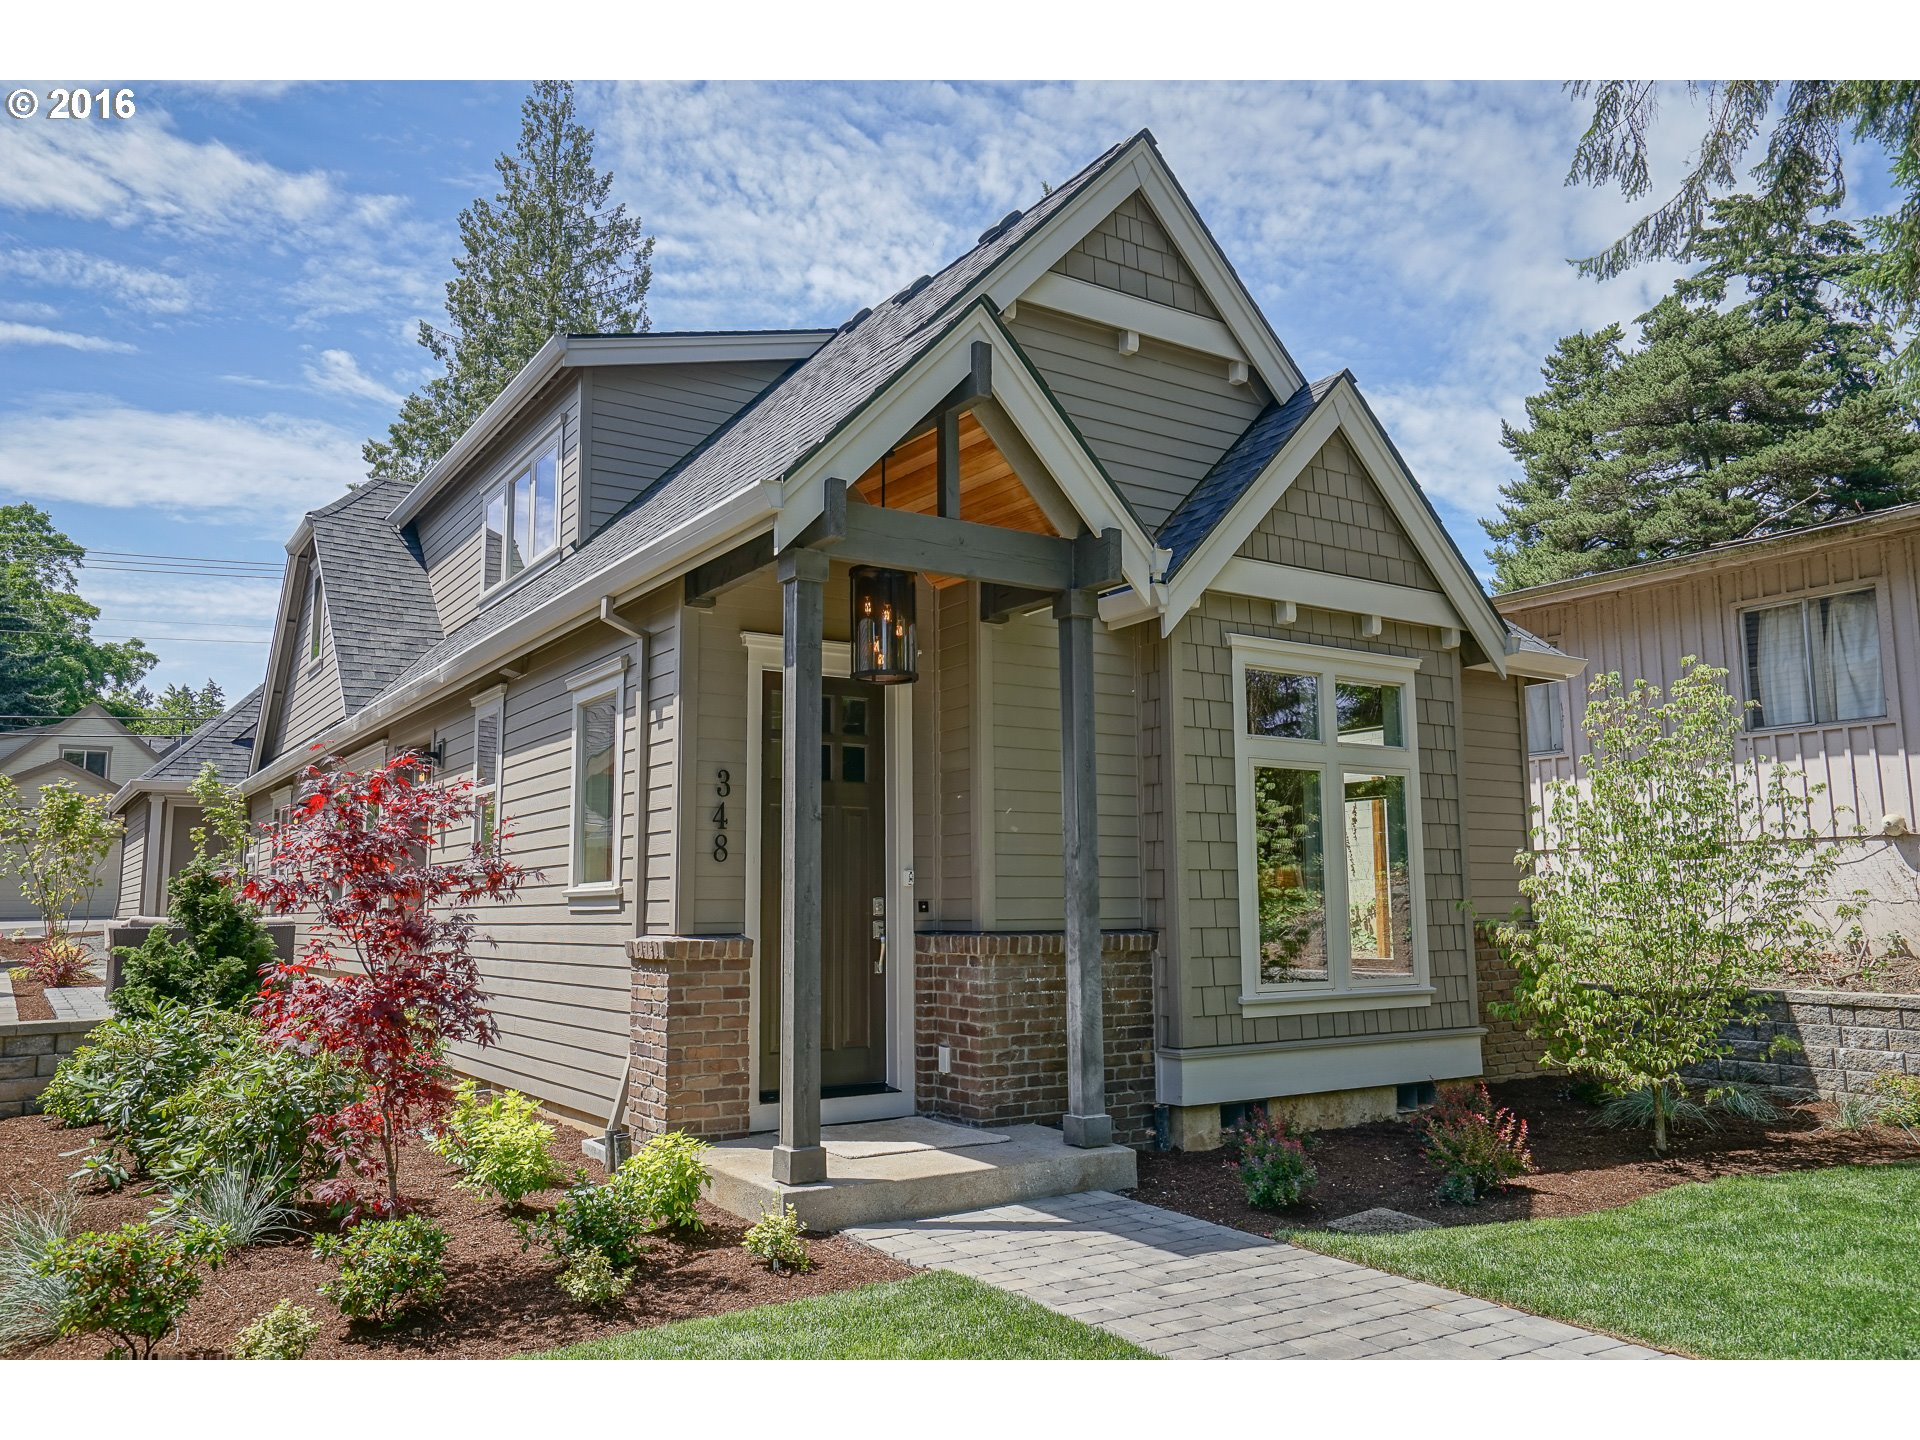 348 5TH ST, Lake Oswego OR 97034